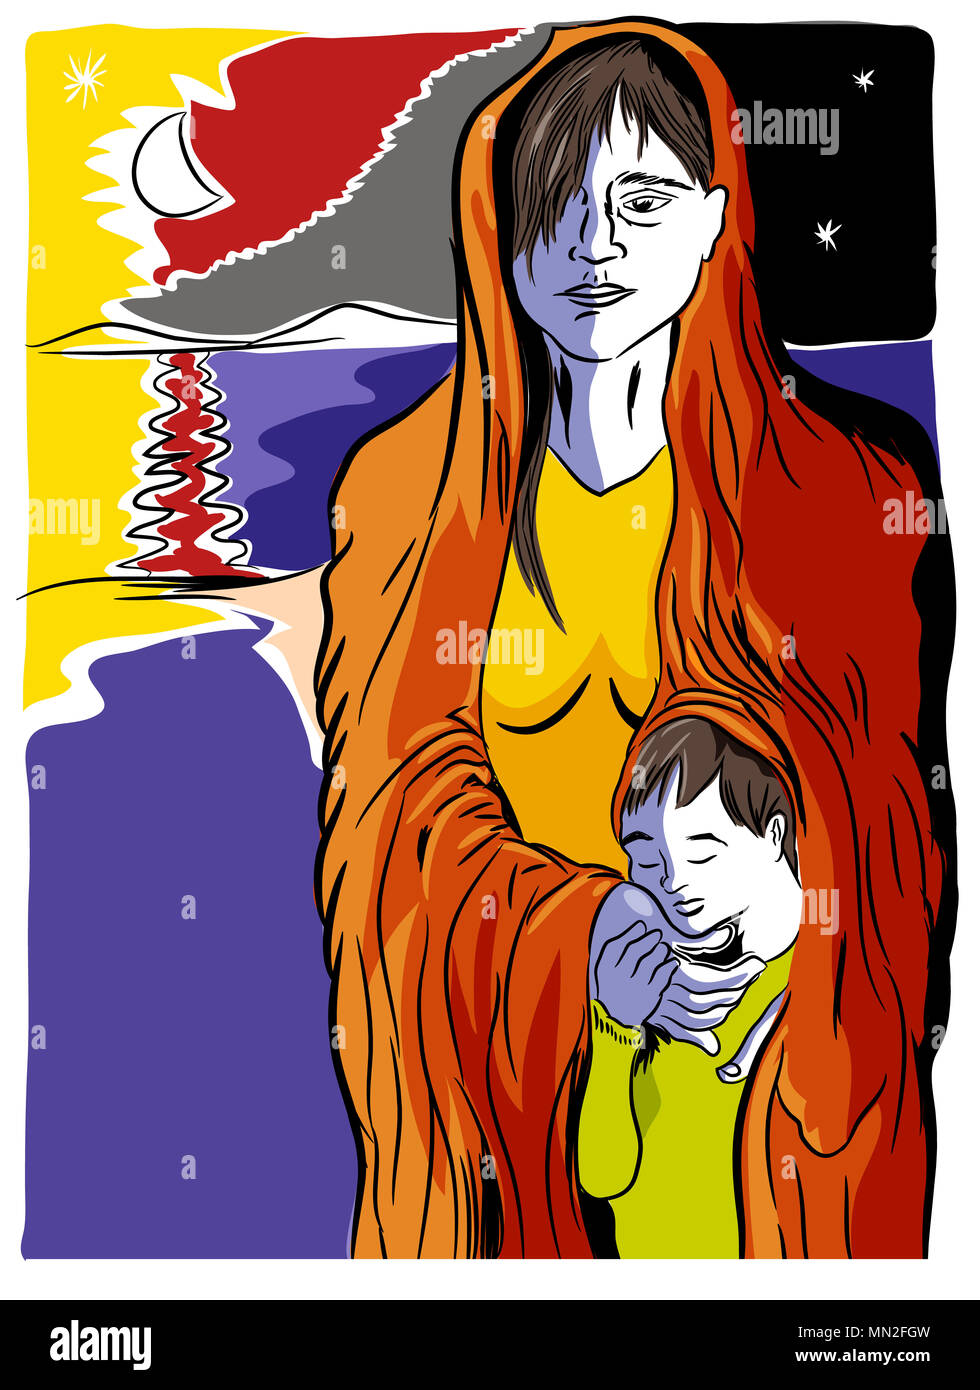 Refugees problem.  Mother and child refugees foreigners immigrants near the sea. - Stock Image